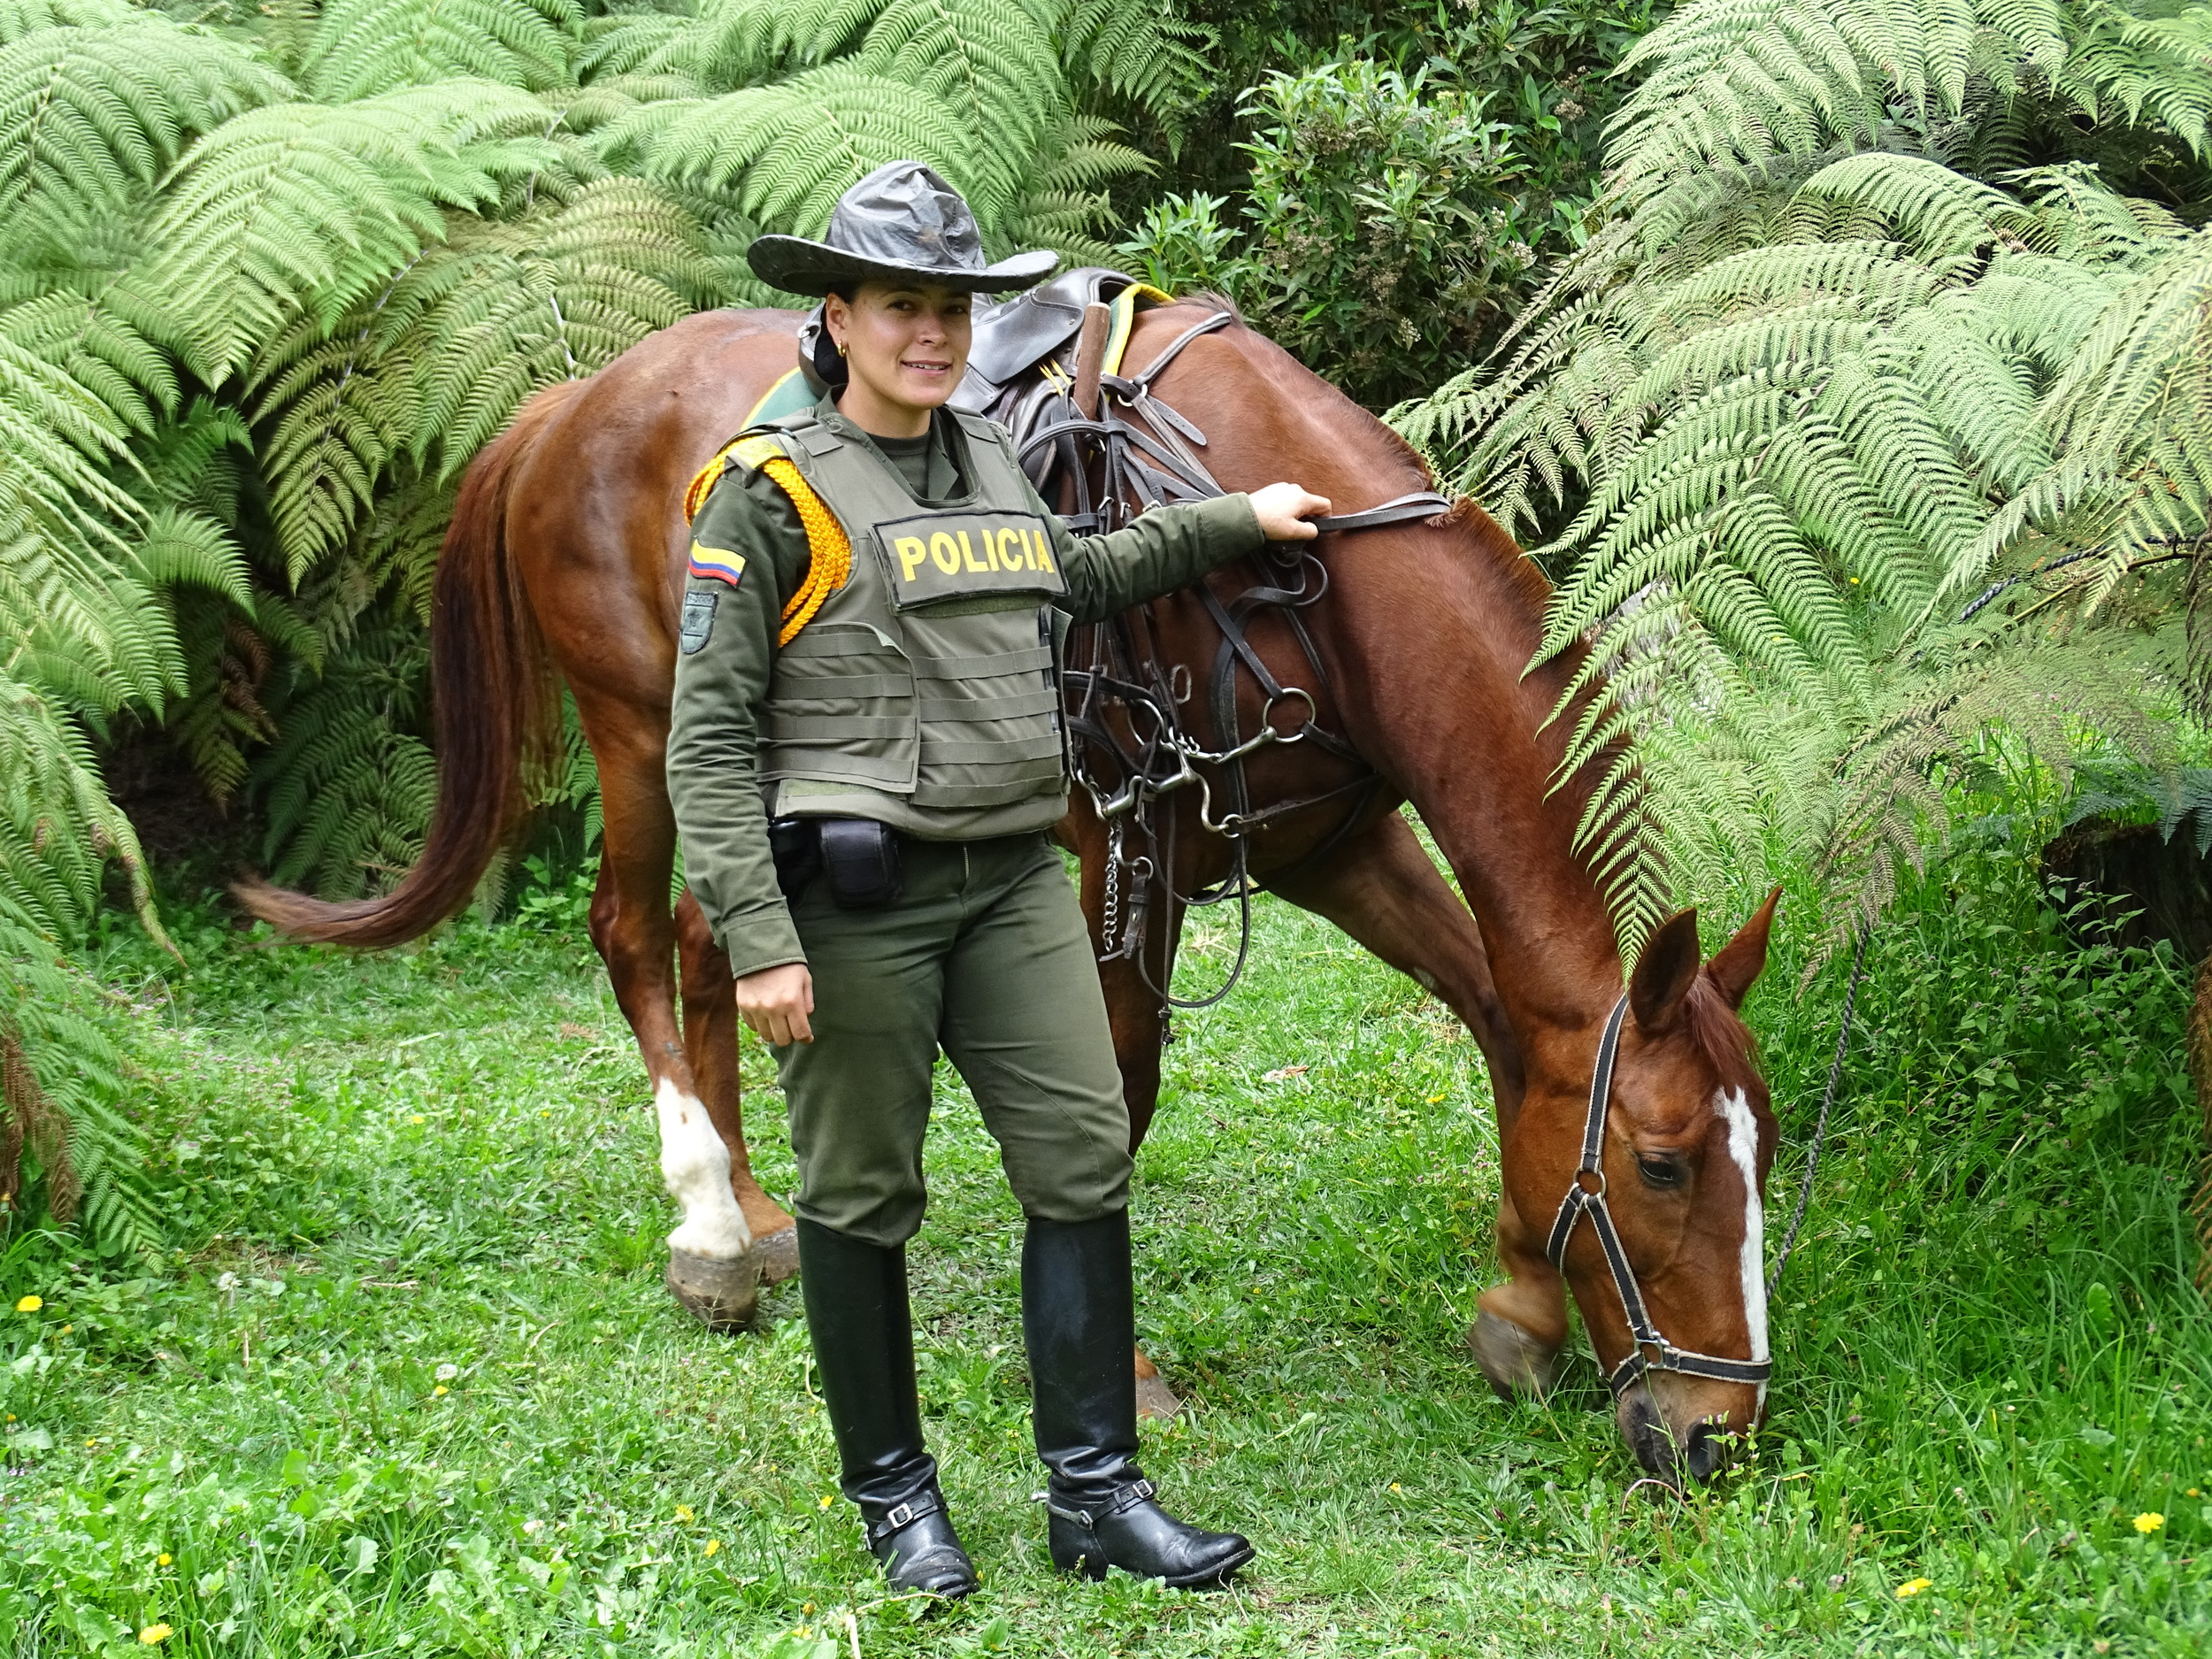 Gorgeous horses and rangers :)